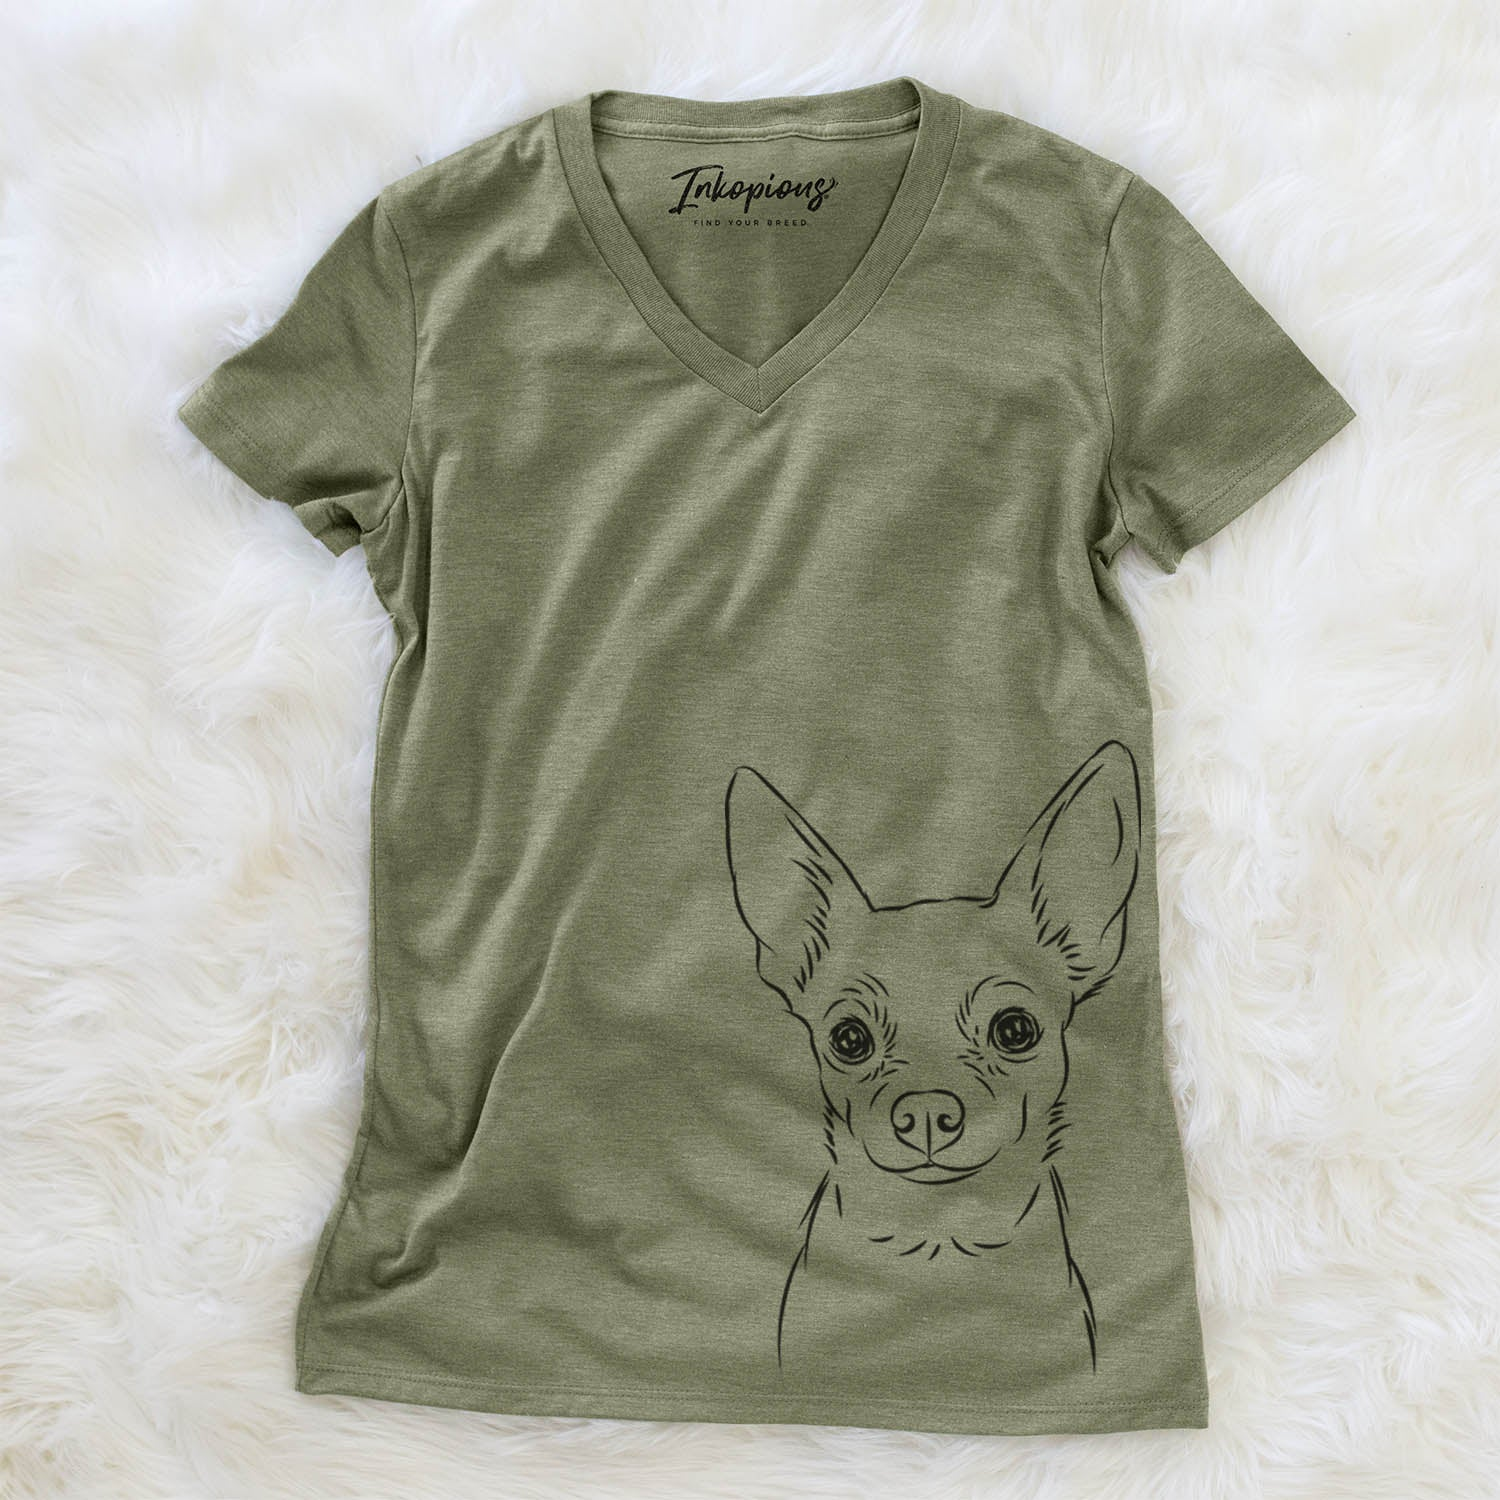 Martini the Chihuahua - Women's Modern Fit V-neck Shirt